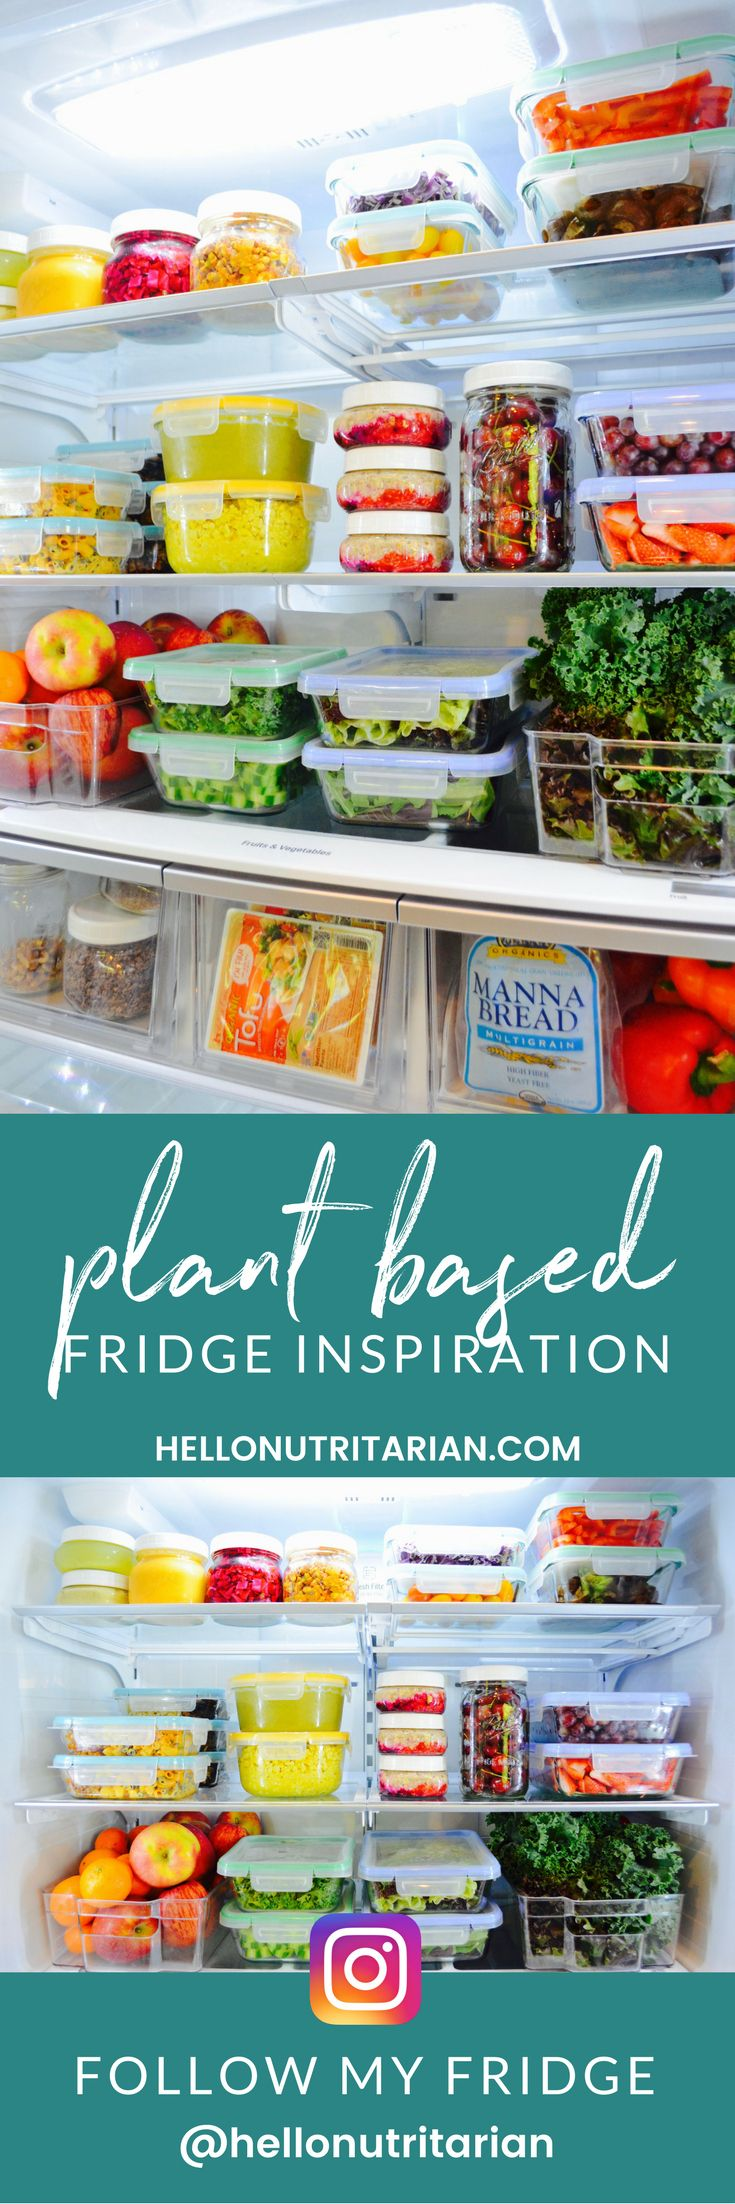 Plant based fridge inspiration!  If you're ready to go whole food plant based and ditched all the processed and animal foods from your life--your fridge is the perfect place to start!  Click through to learn all about food storage containers, refrigerator organization and my favorite last-forever-in-the-fridge recipes for batch cooking on the weekends!  I share pics of my fridge weekly, so stay tuned!  xo, Kristen #fridgegoals #refrigerator #wholefoodplantbased #whatthehealth